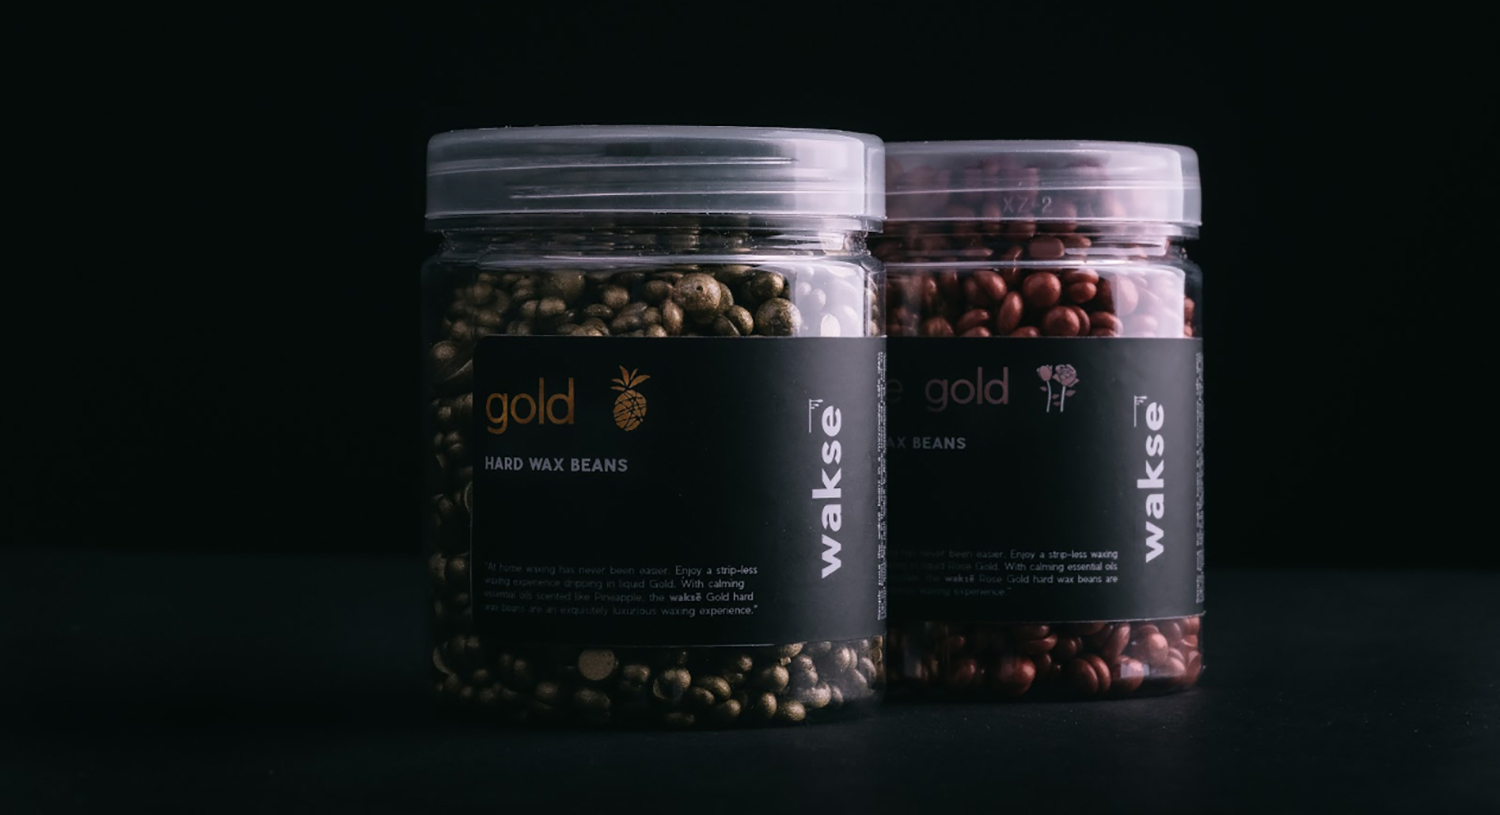 wakse features 100% vegan and cruelty-free wax beans in a variety of pleasurable fragrances.